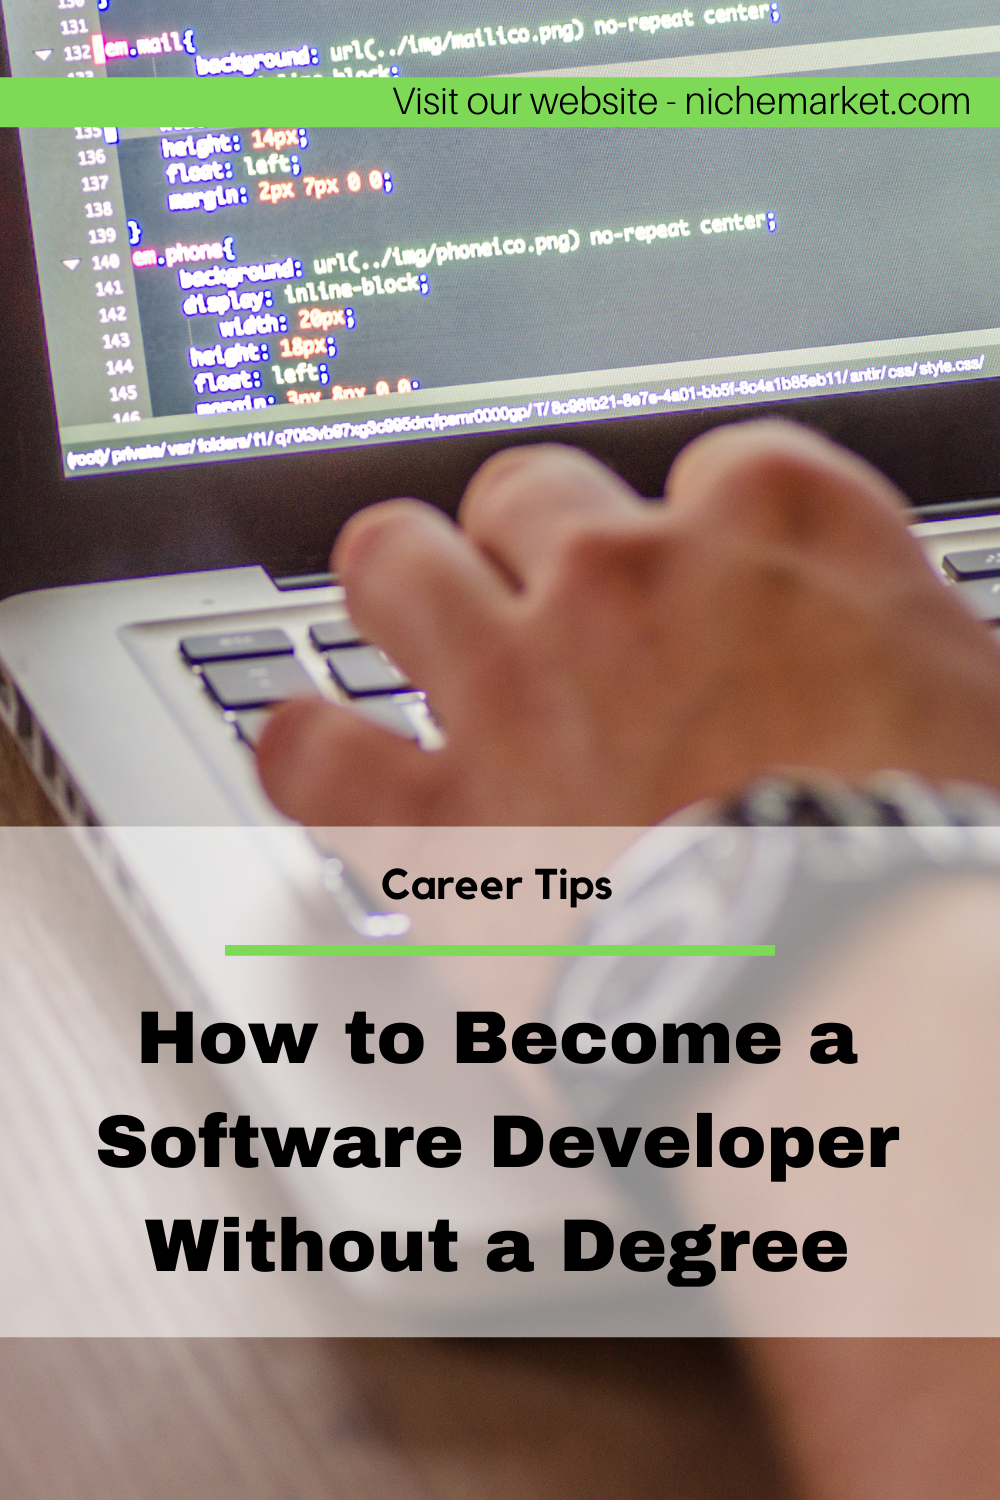 How To Become A Software Developer Without A Degree In 2020 Software Development Development How To Become